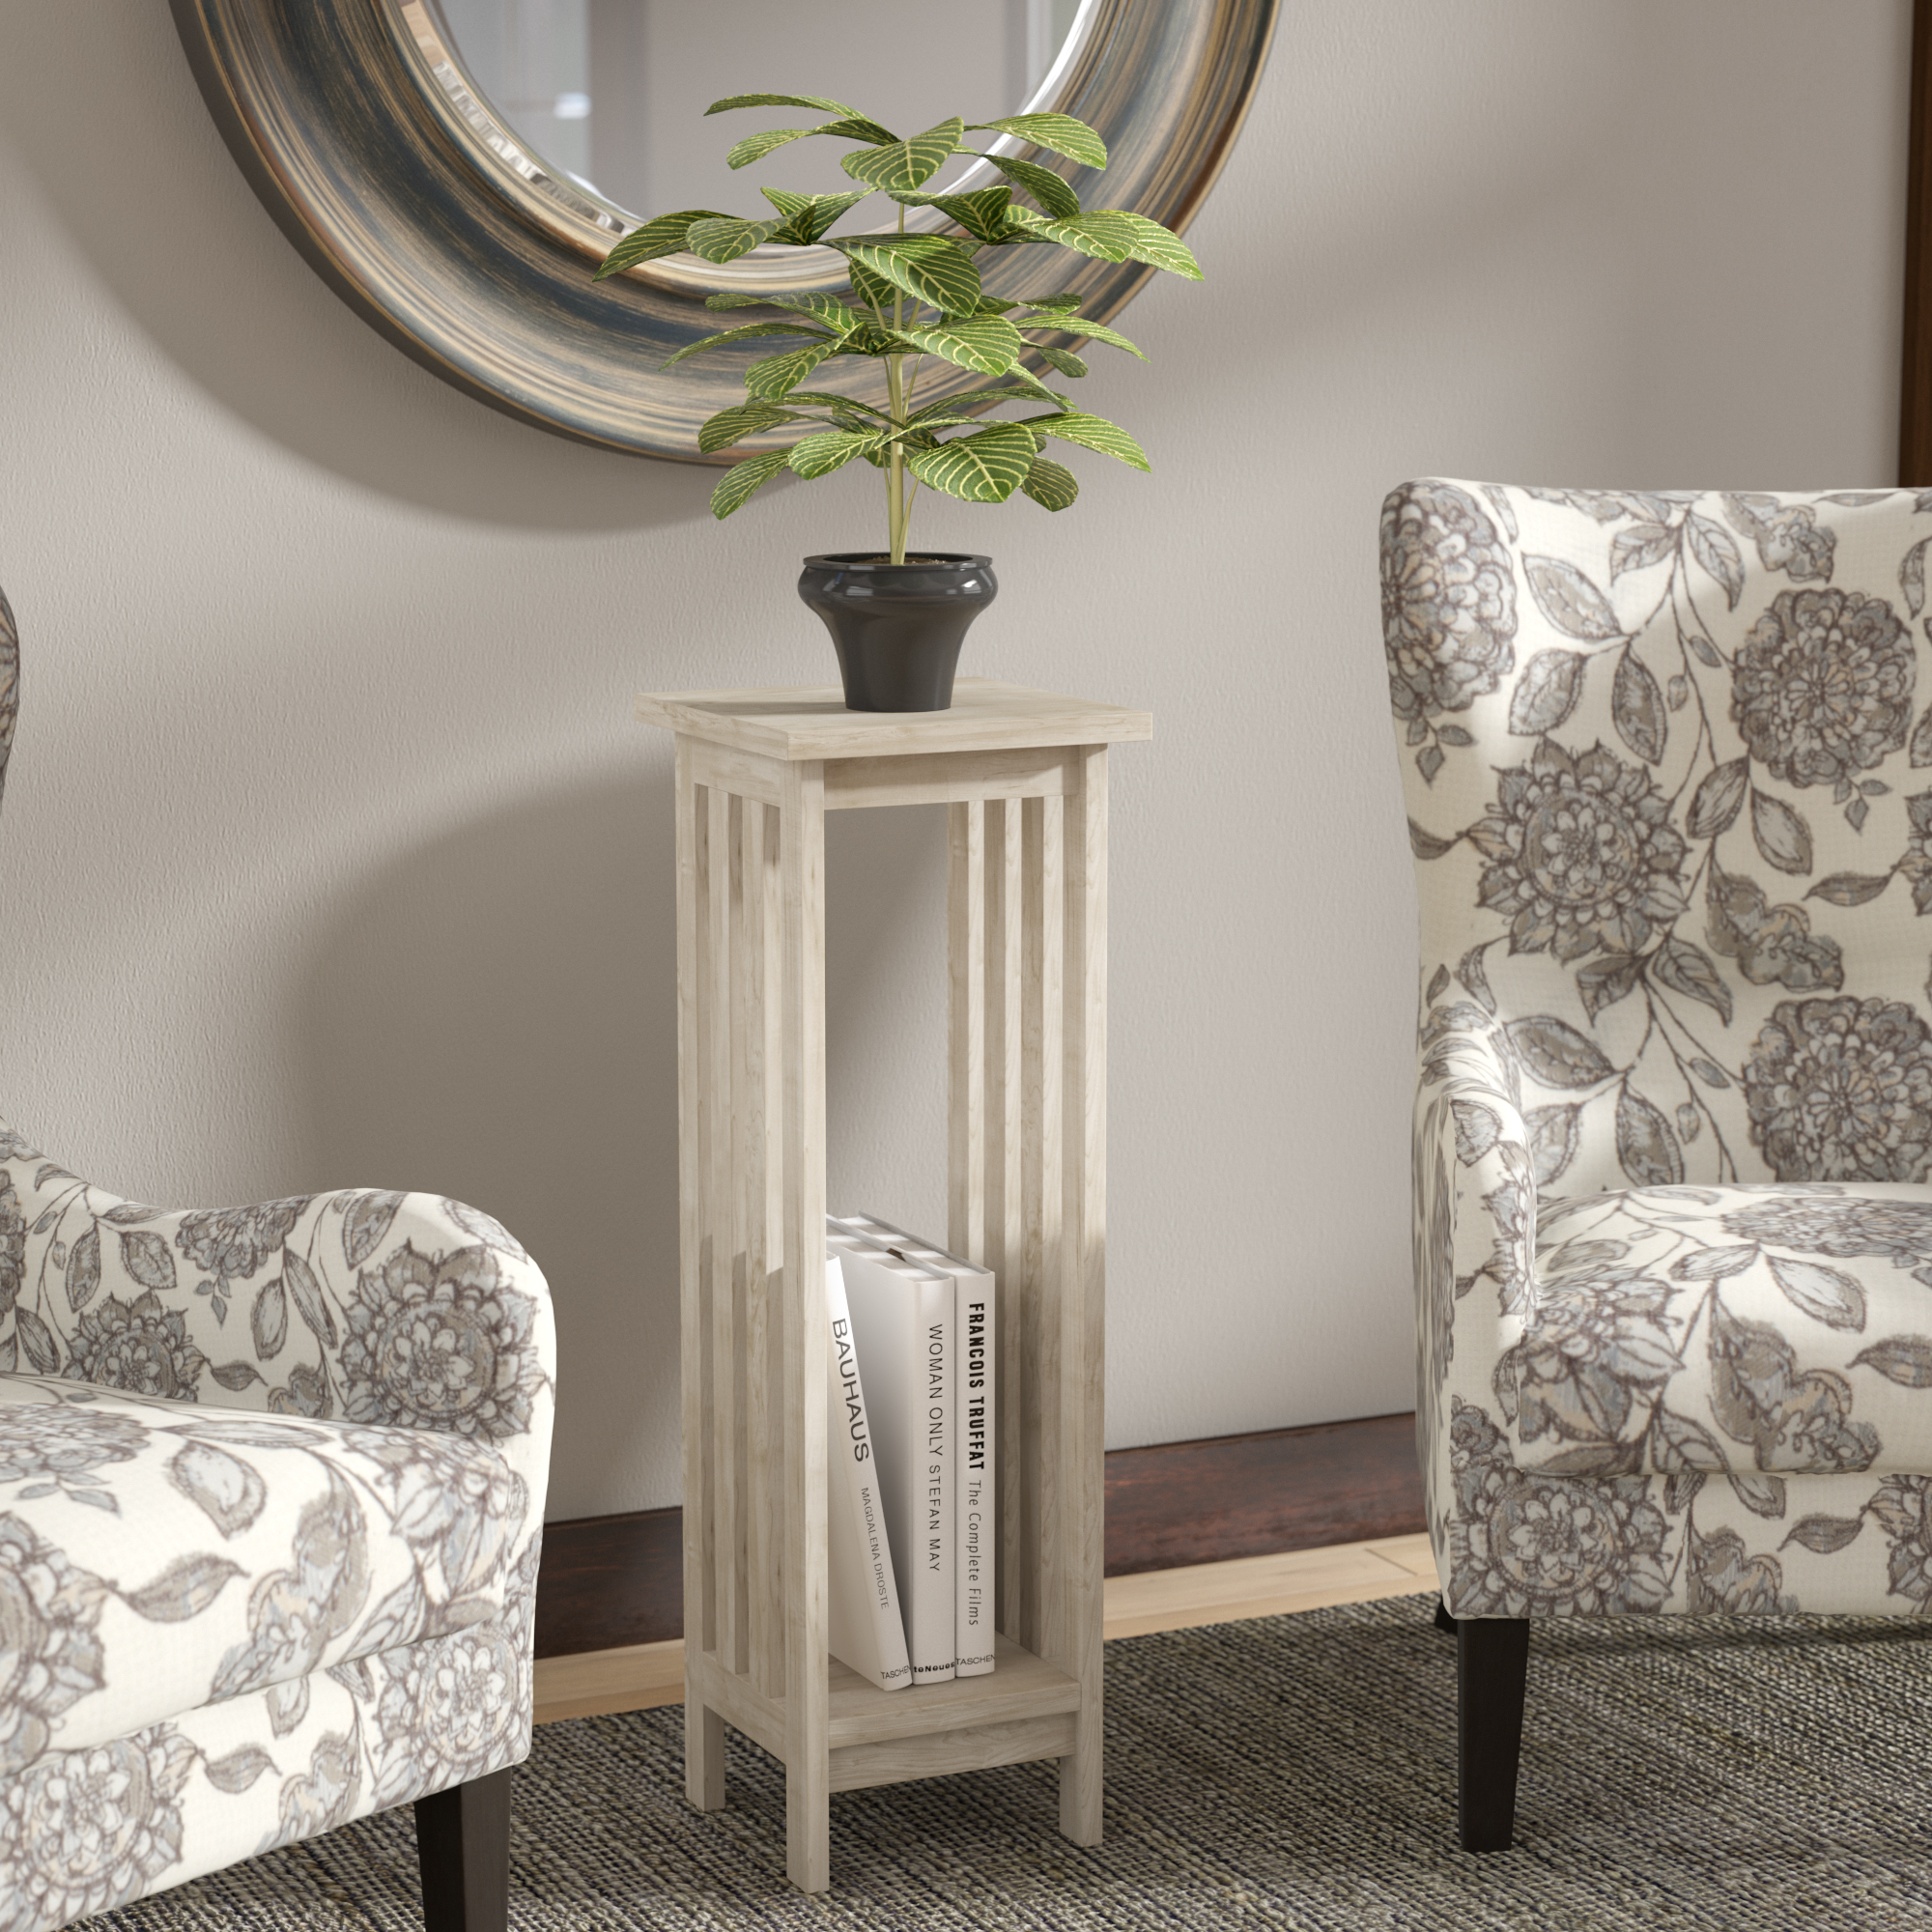 accent tables joss main default name piece chair and side table set plant stands solid pine bookcase patio tablecloths all weather wicker couch curved mirrored bedside living room